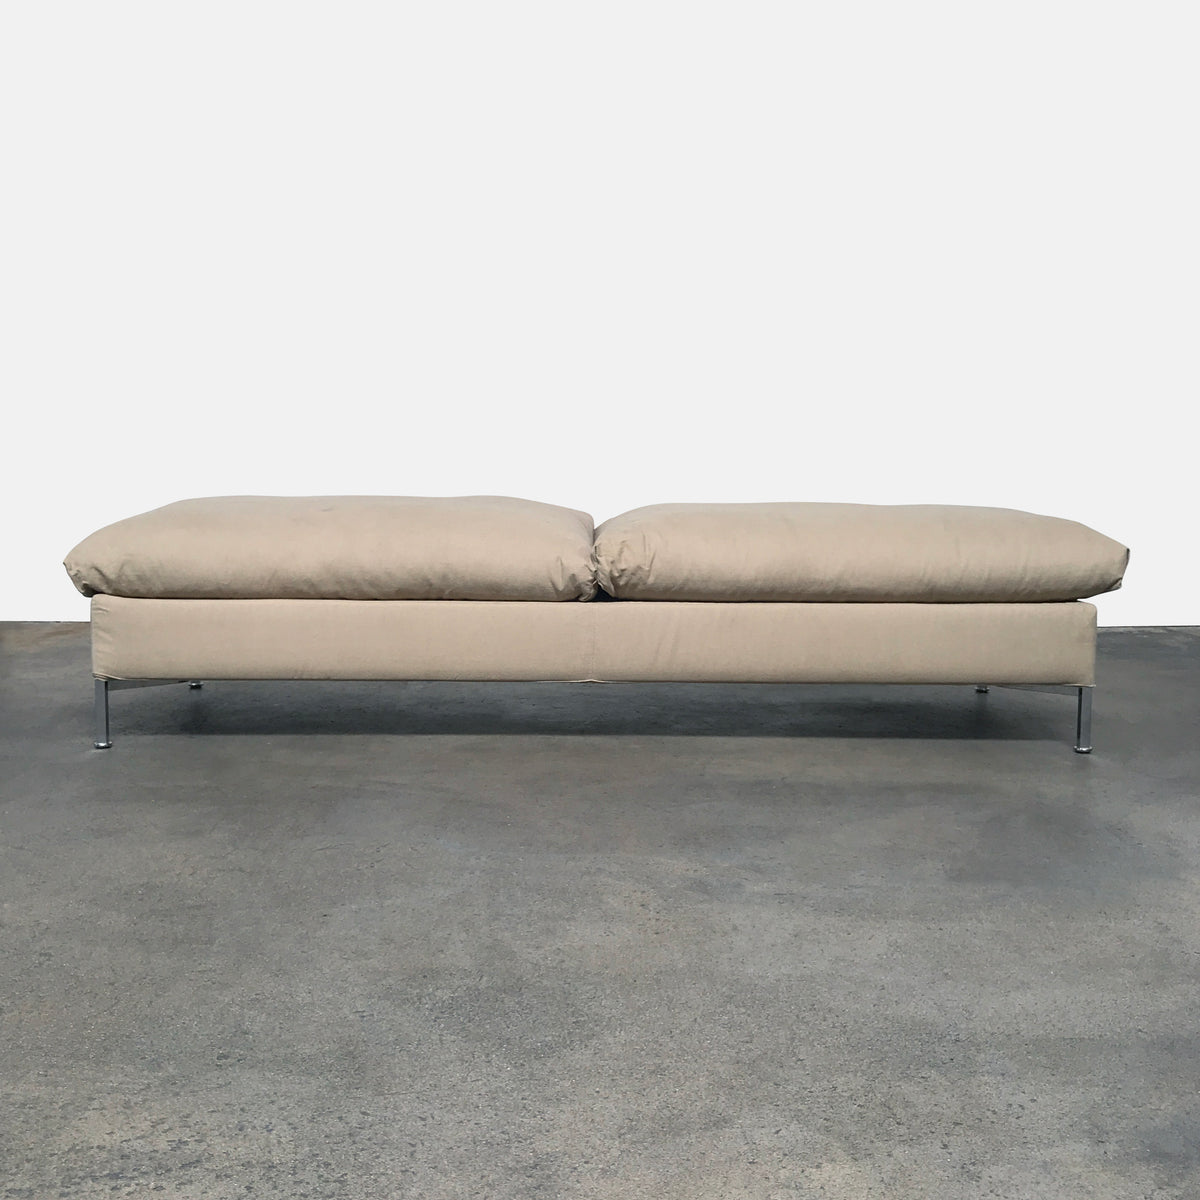 Living Divani Cream Fabric Box Daybed by Piero Lissoni | LA | Consign